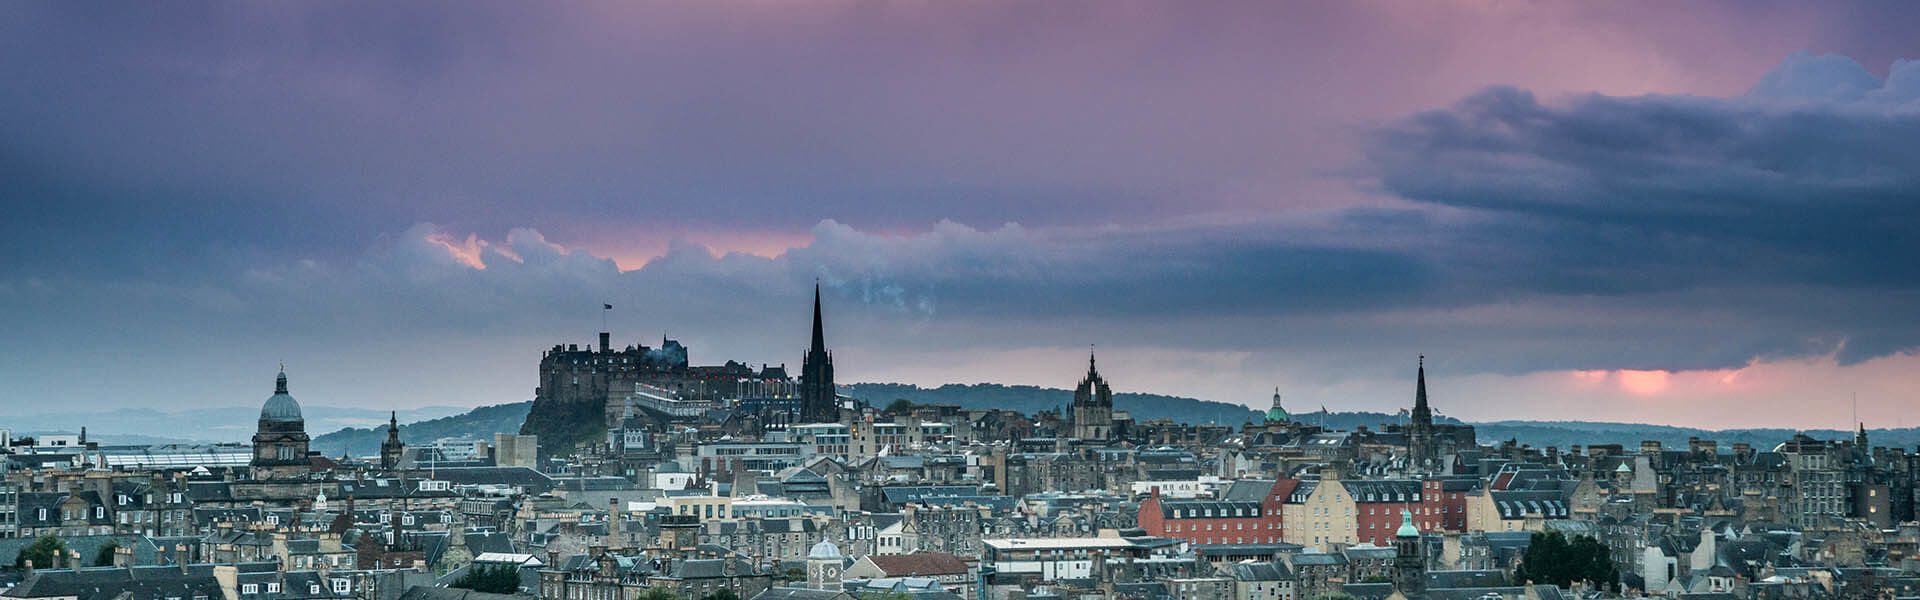 Stormy Skies over Edinburgh Castle - Spectacular Edinburgh Photography